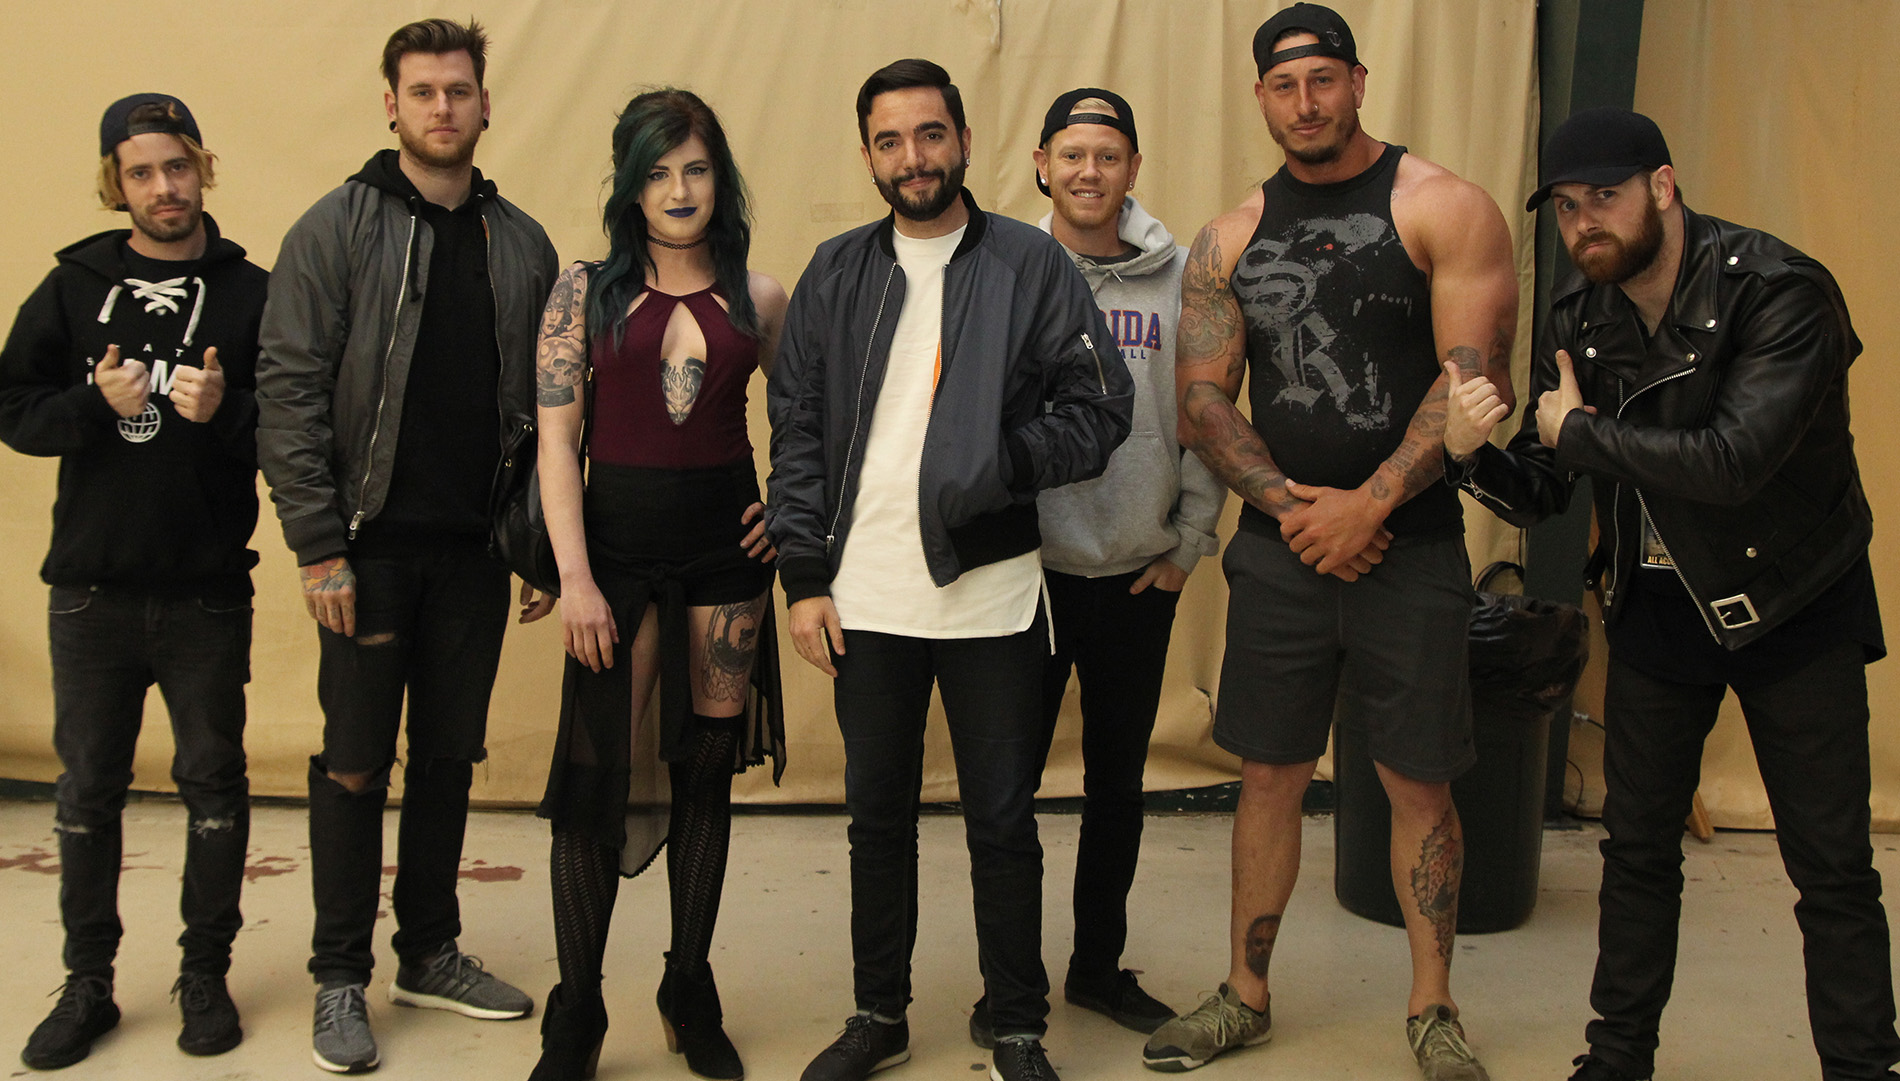 A day to remember meet and greet lazer 1033 please enable javascript to view the comments powered by disqus m4hsunfo